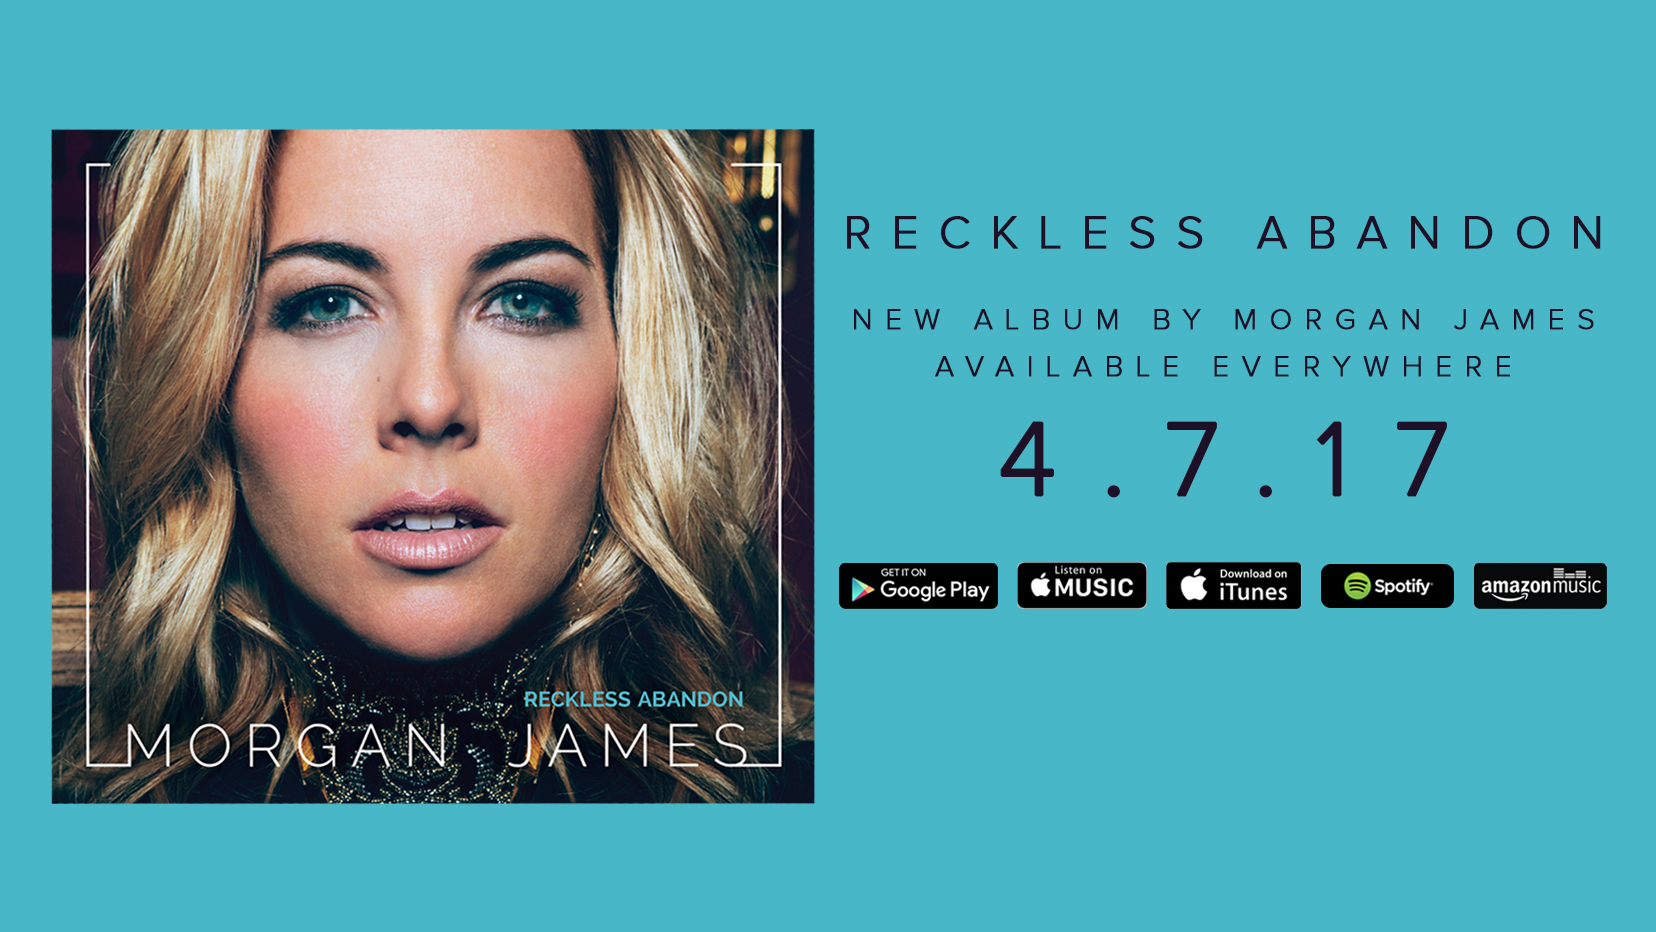 Morgan James - Reckless Abandon - Available Now